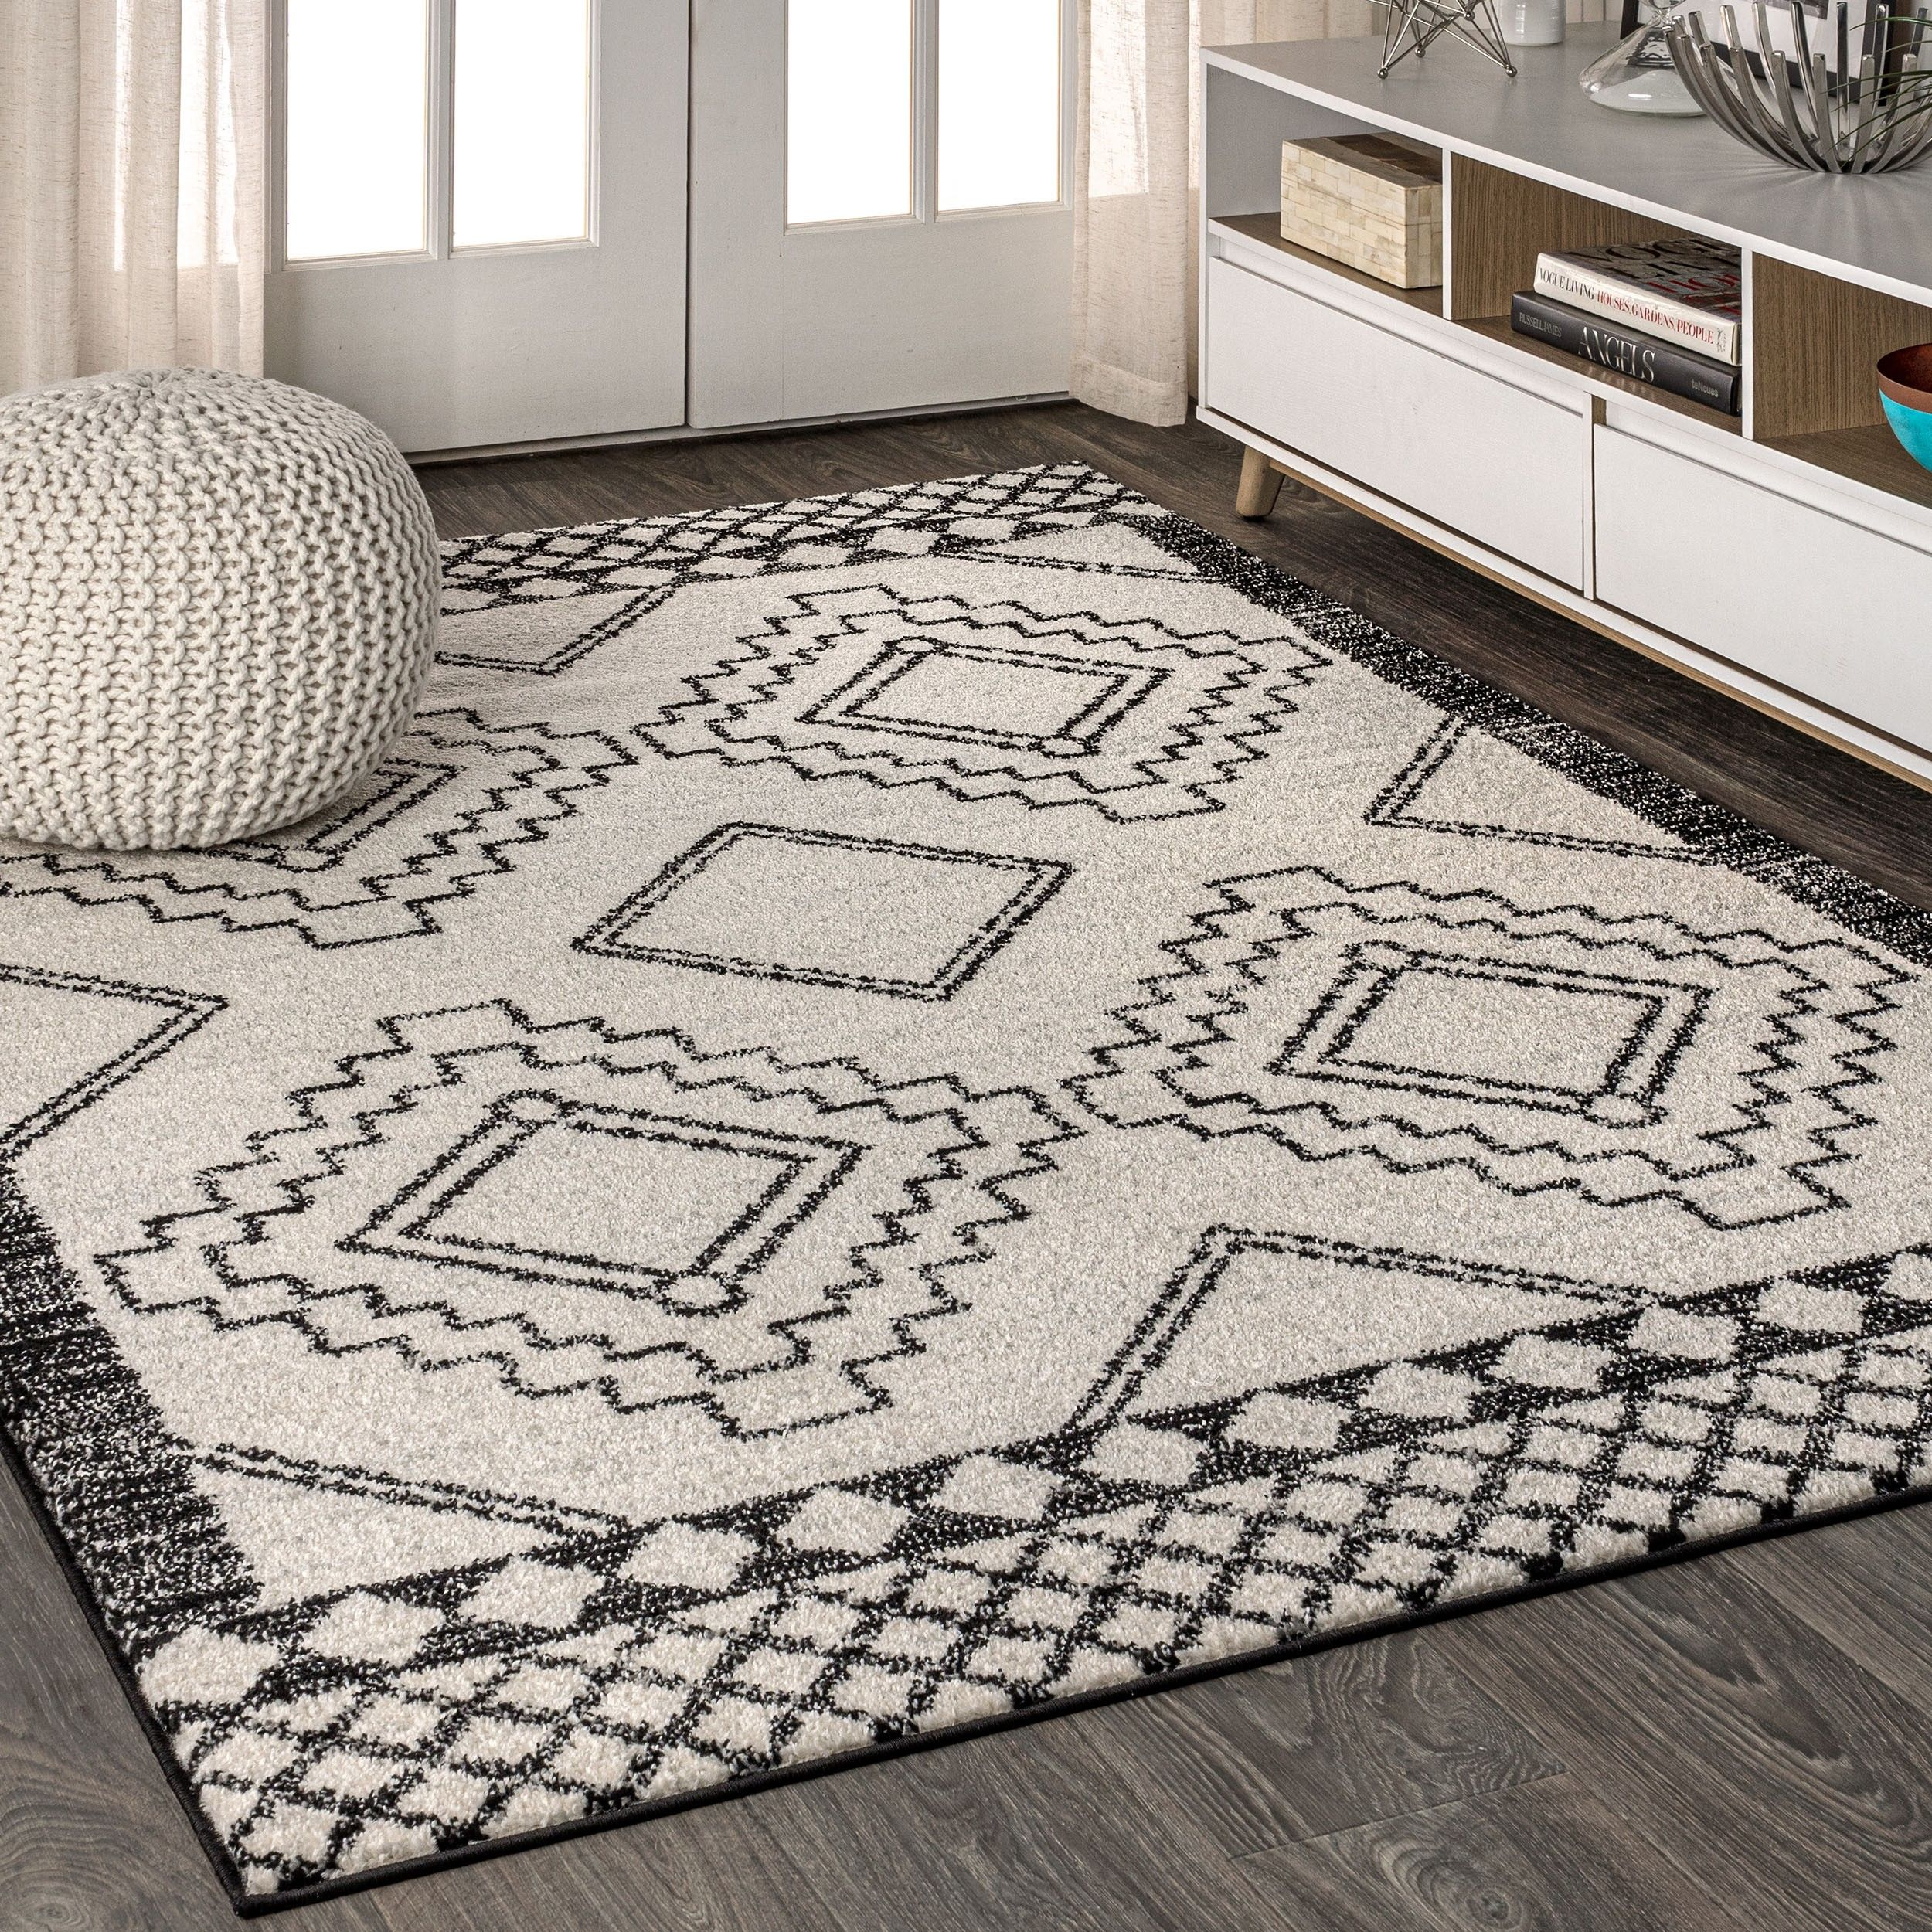 Nairobi Moroccan Beni Souk Area Rug In 2020 With Images Area